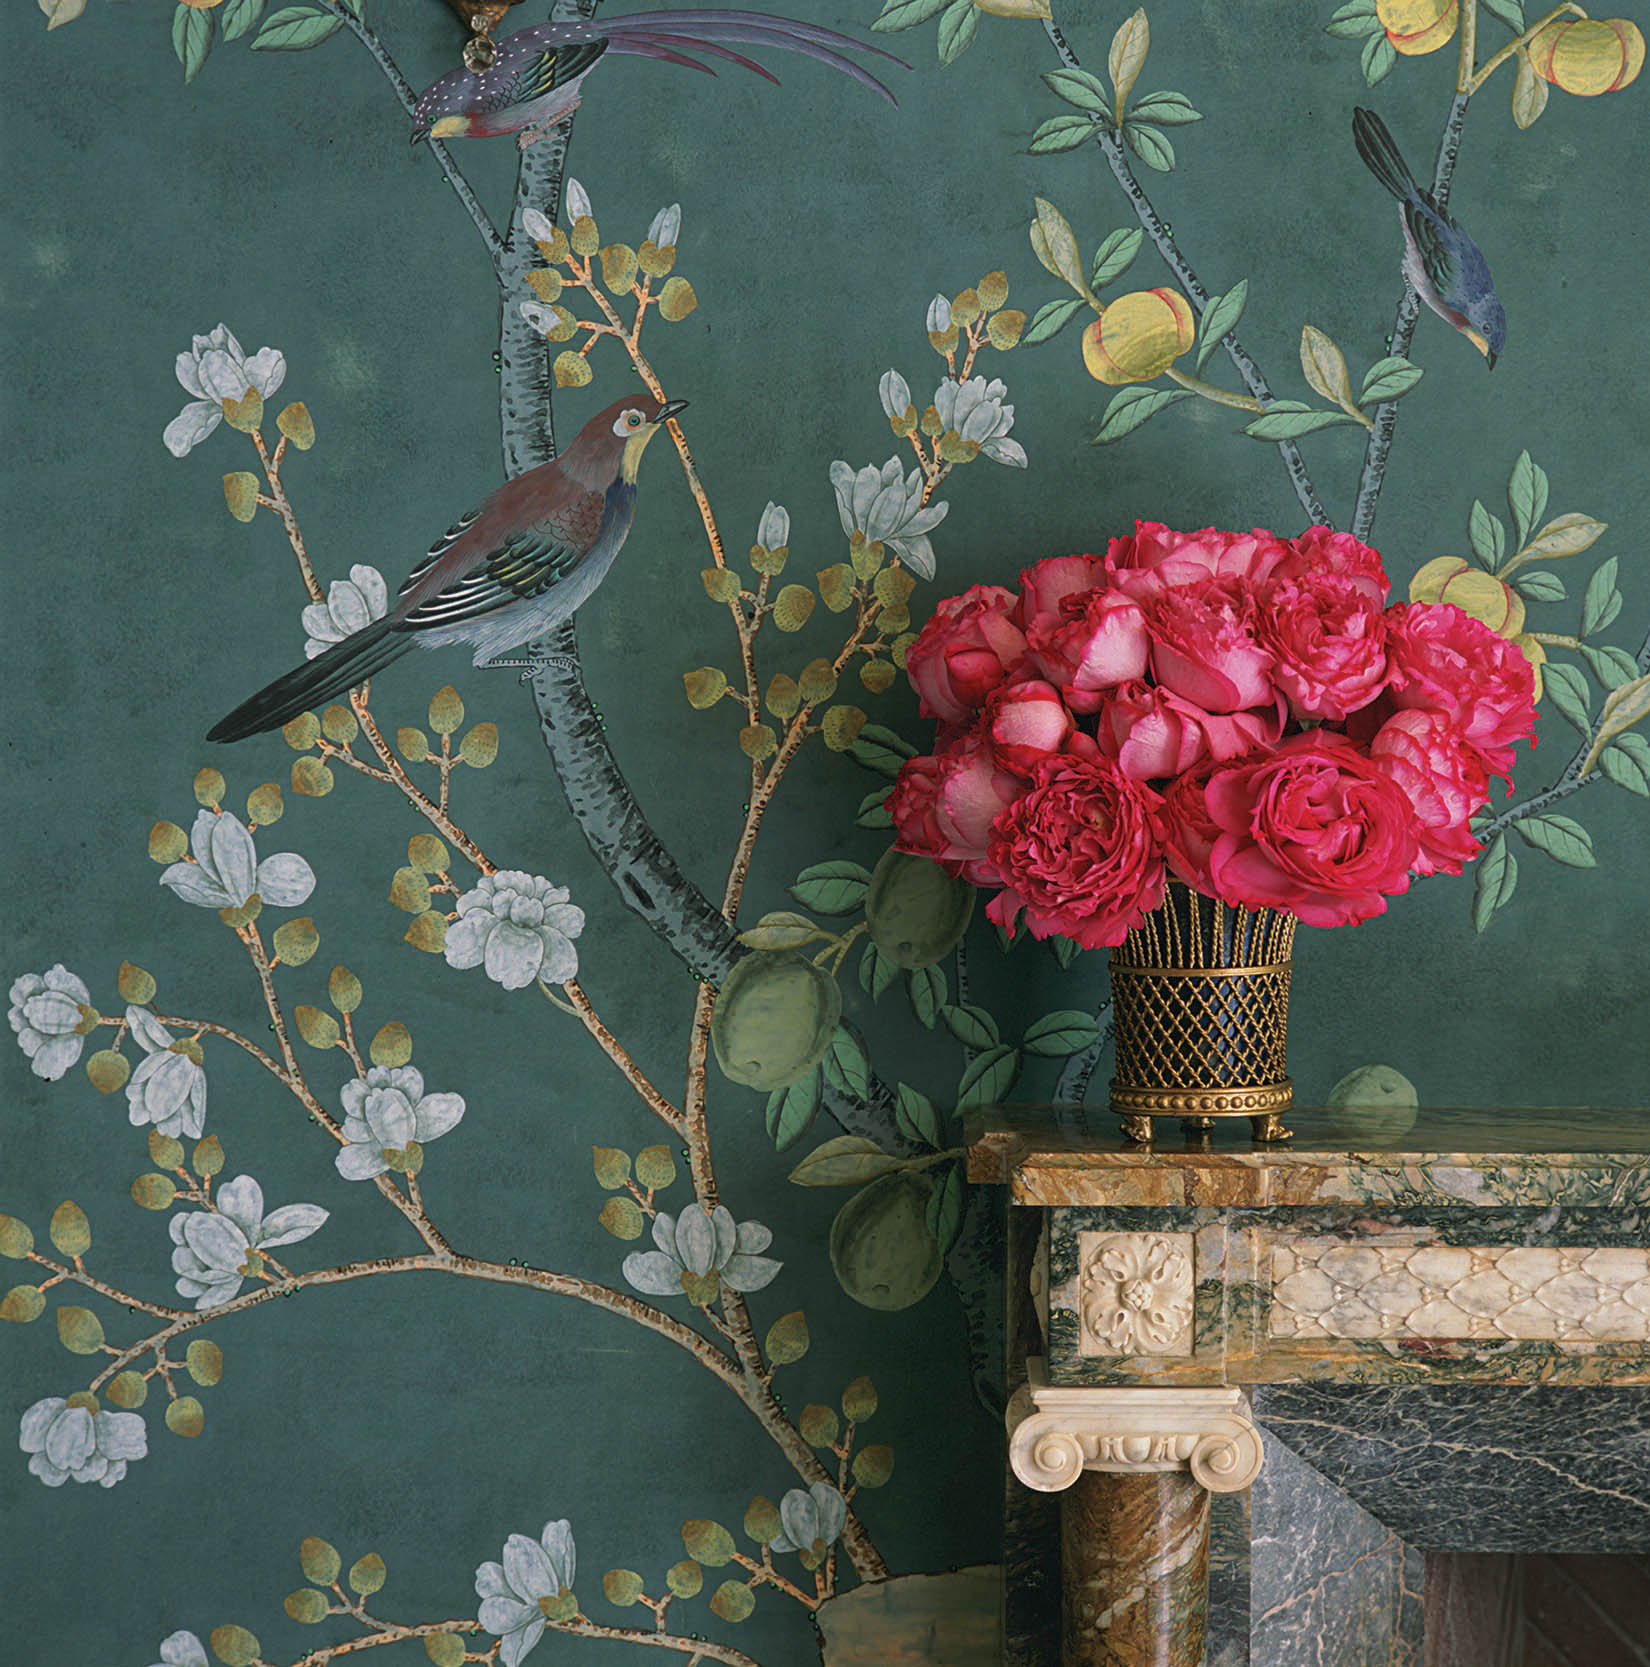 Where to Buy Scenic Wallpaper